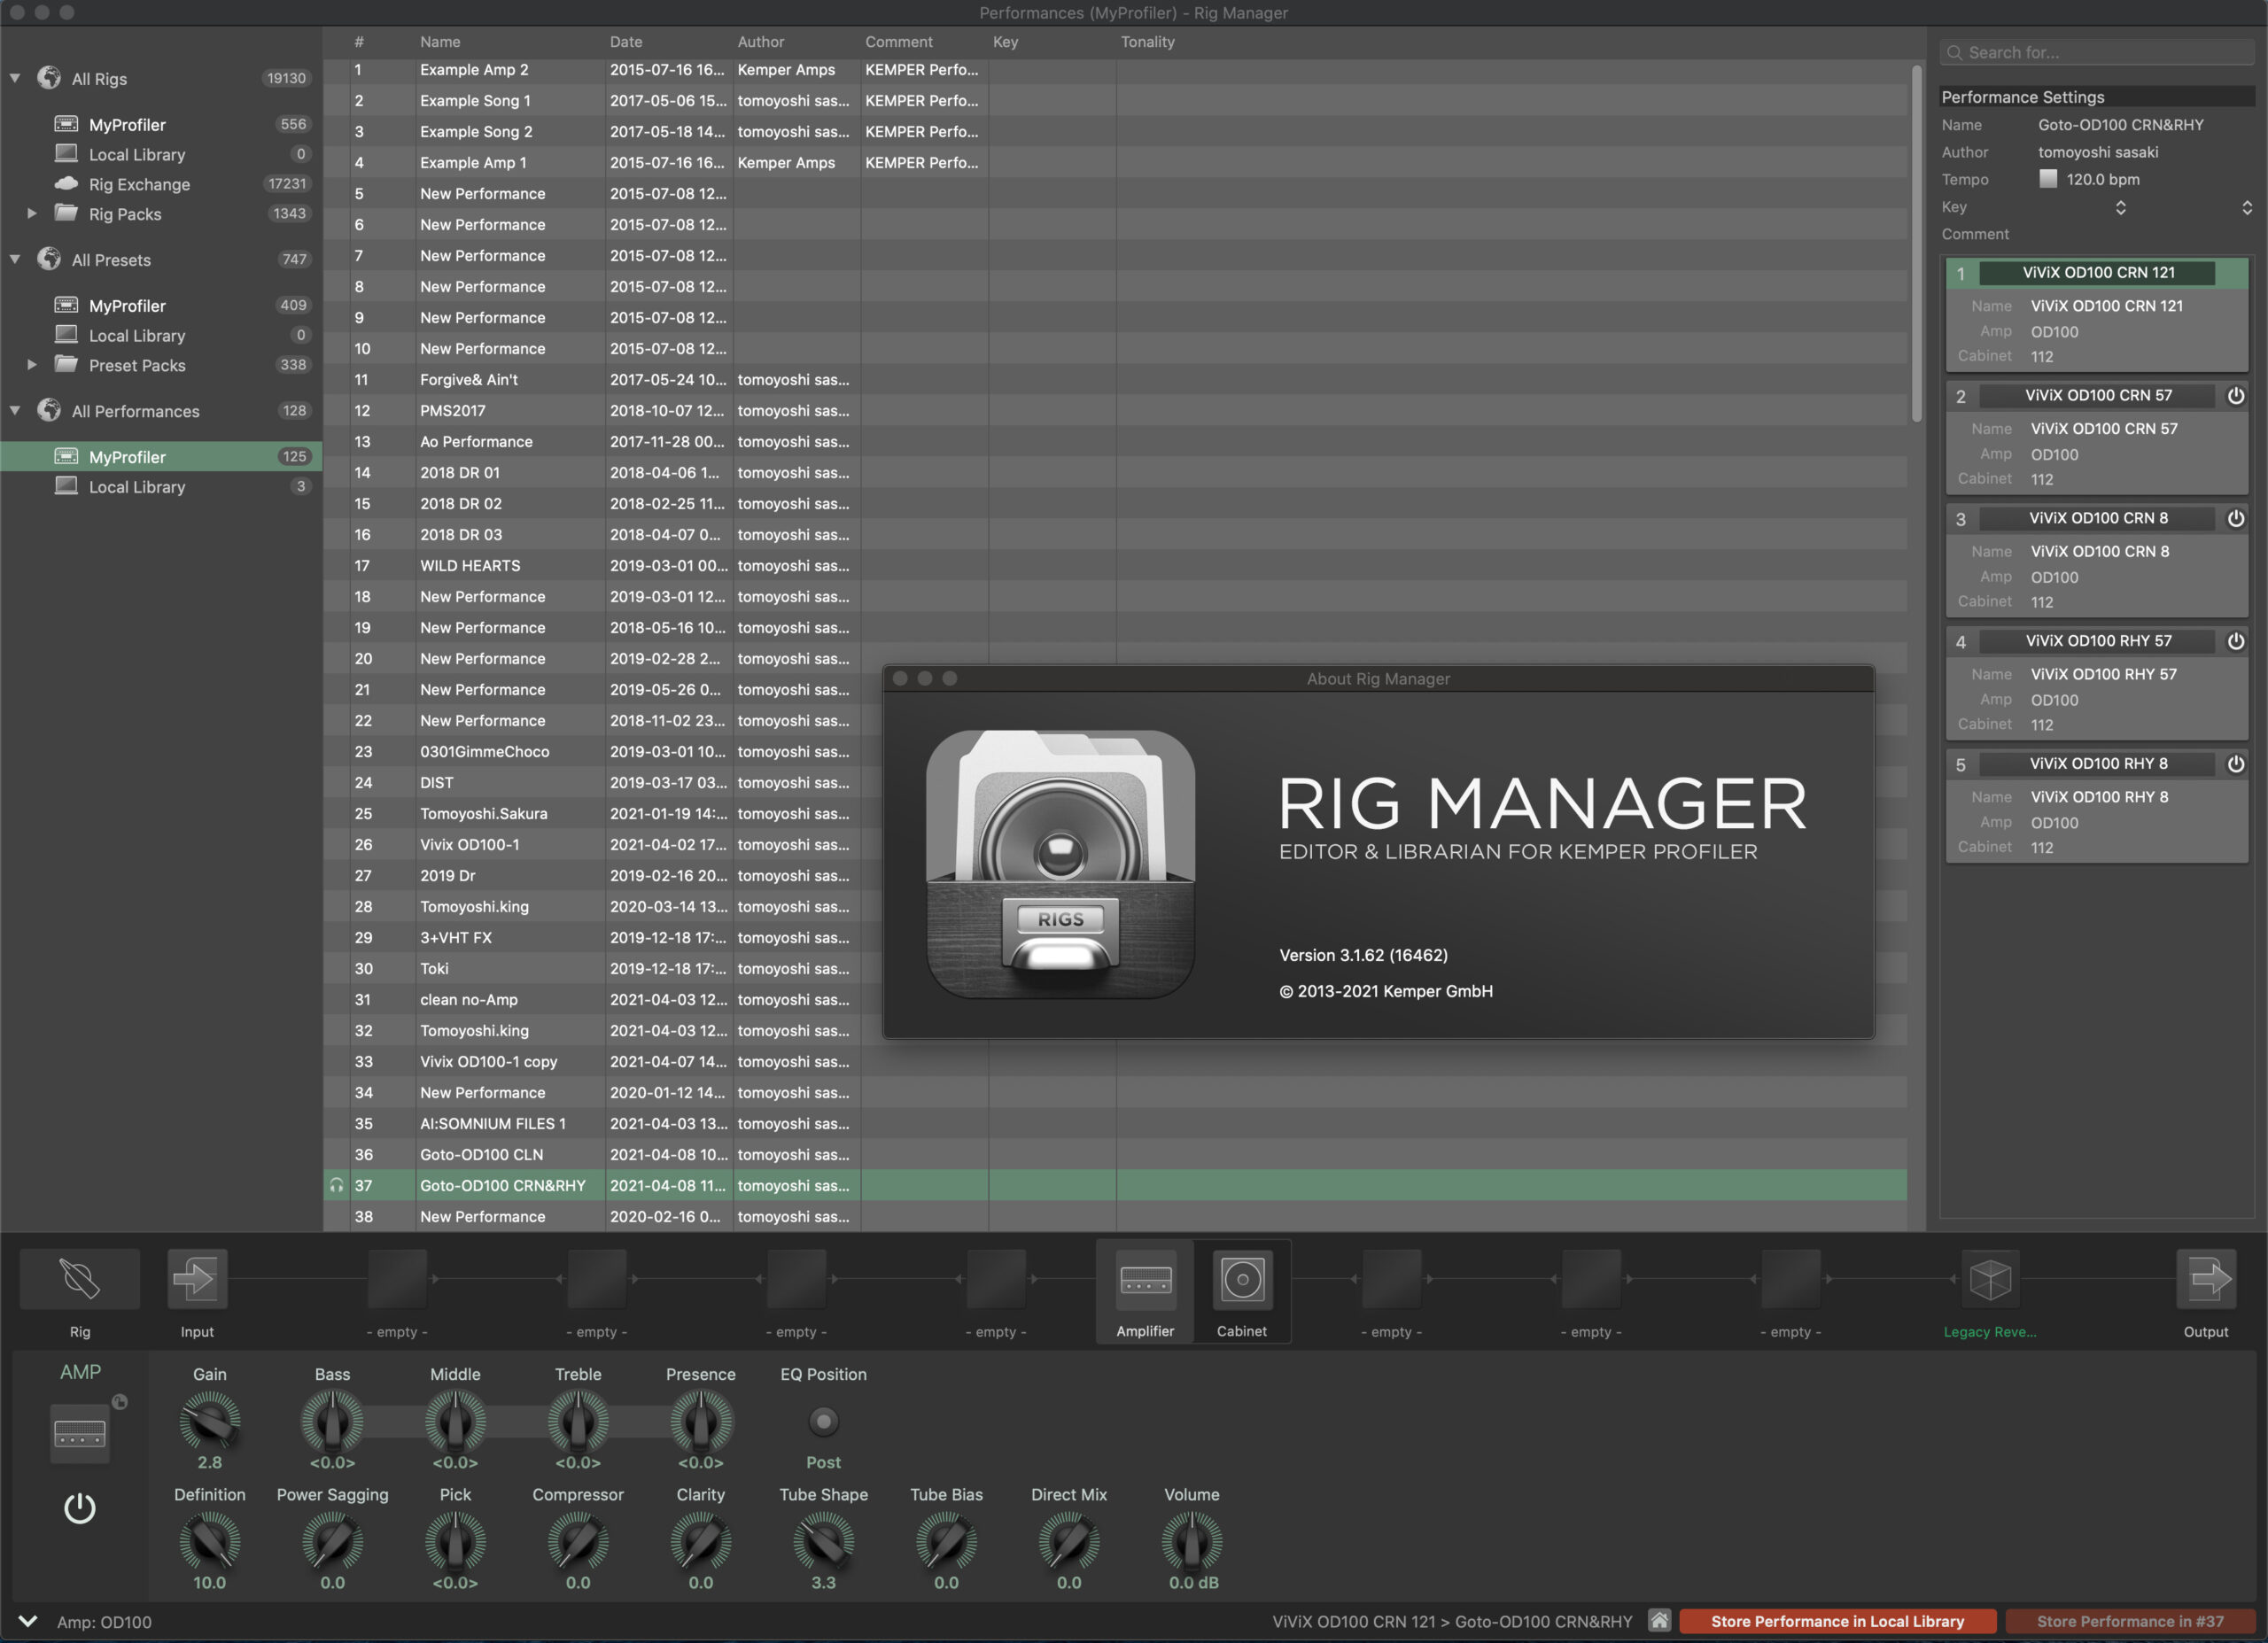 Rig Manager